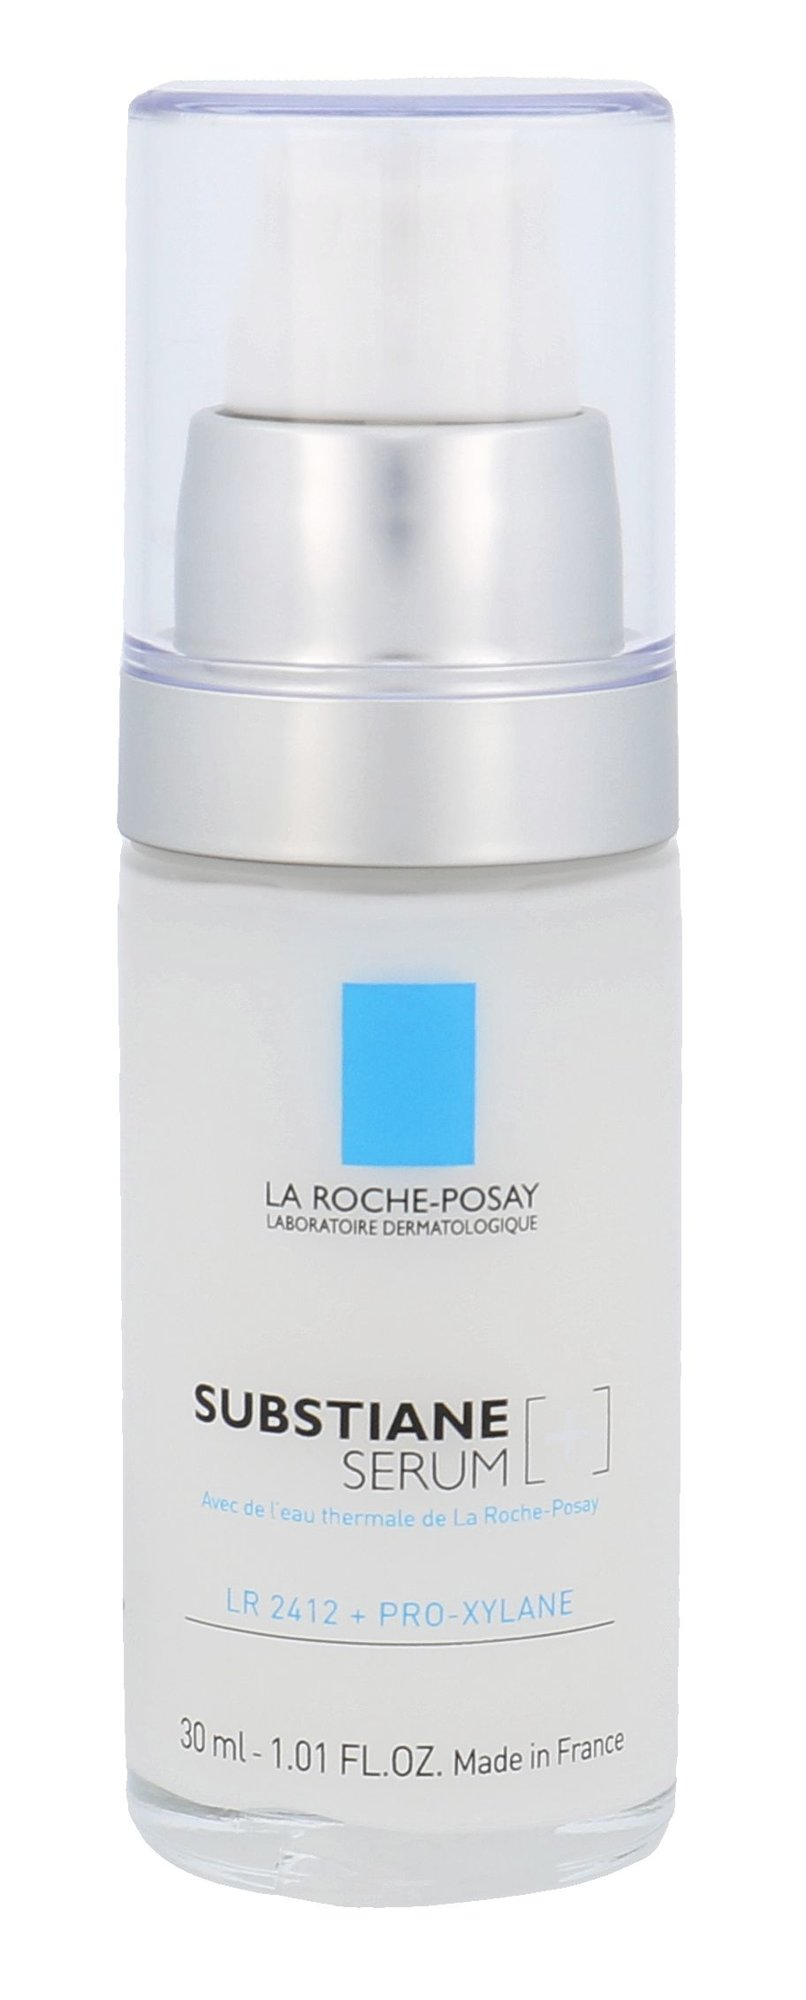 La Roche-Posay Substiane Cosmetic 30ml